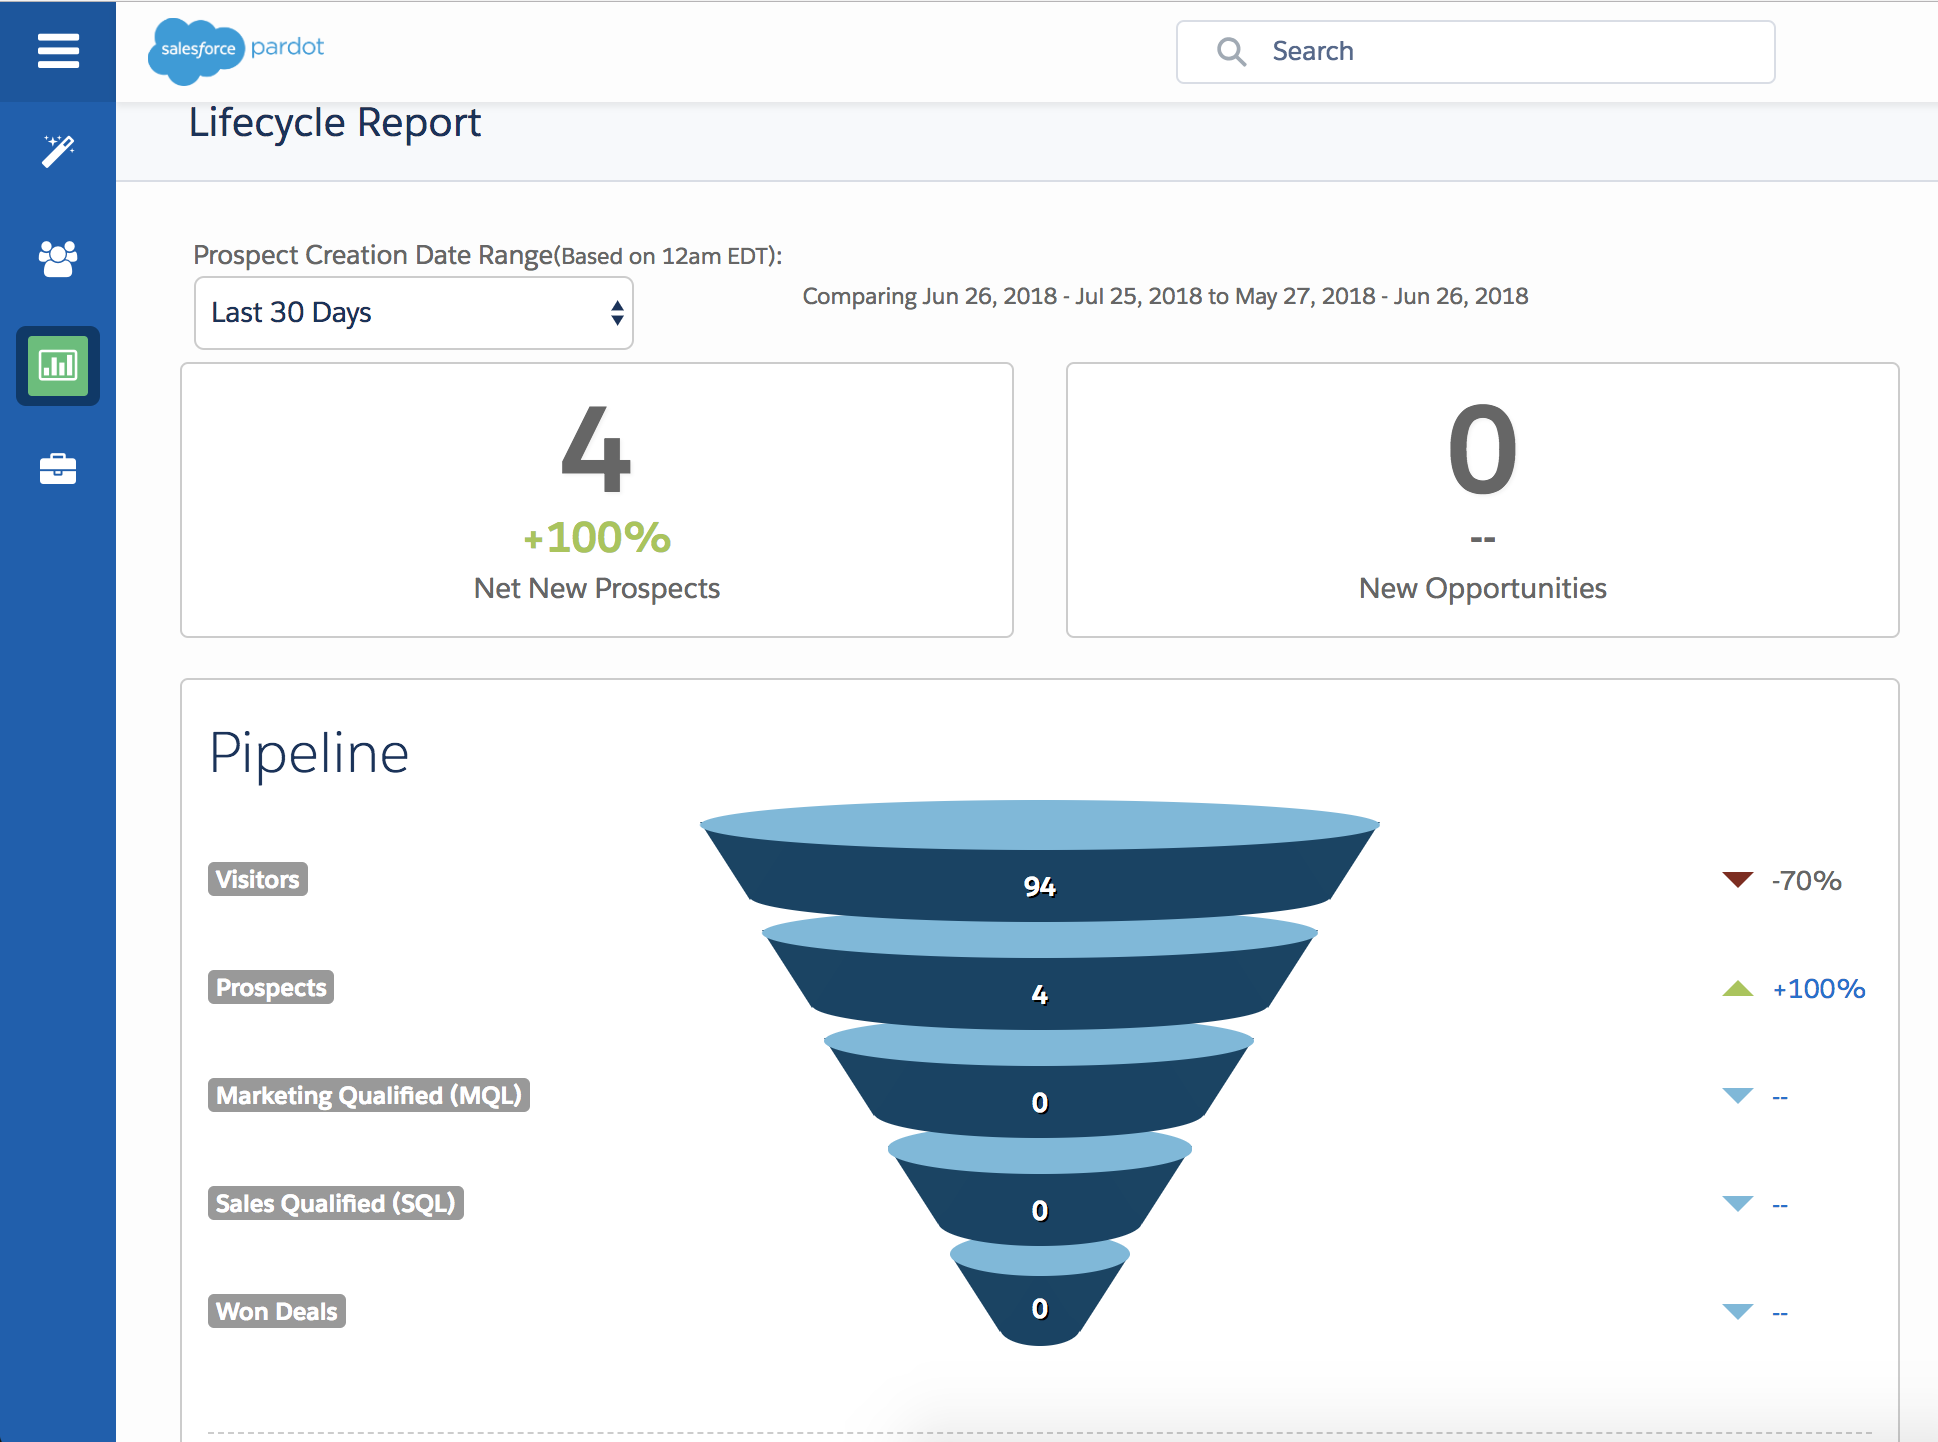 A screen grab showing what is pardot